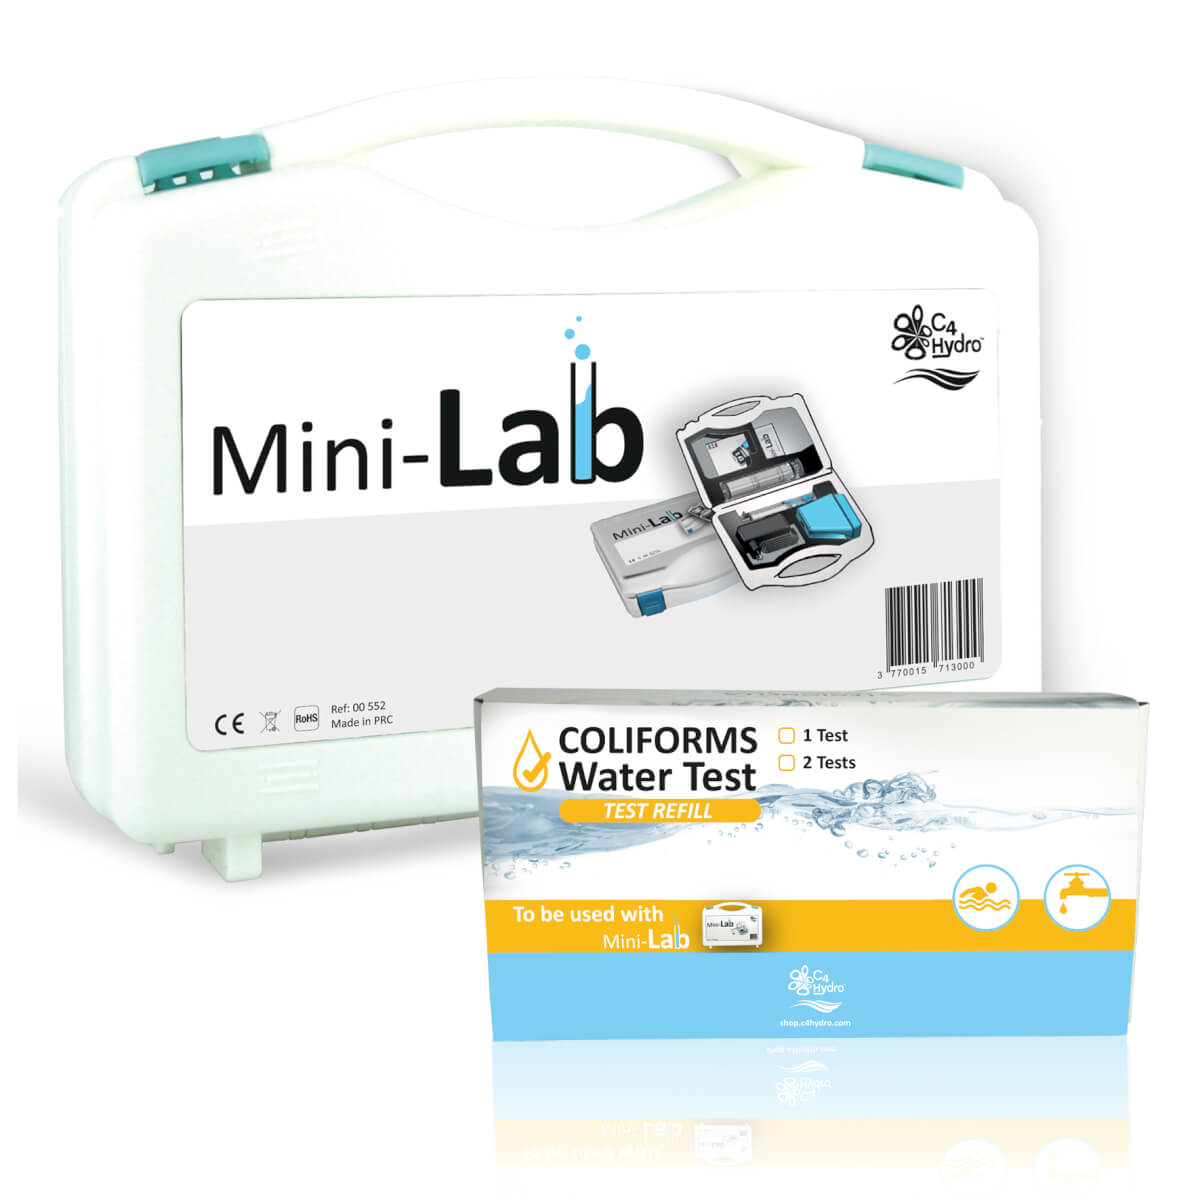 Coliform Water Test - Coliform Bacteria Test Kit | TotalProductsGroup